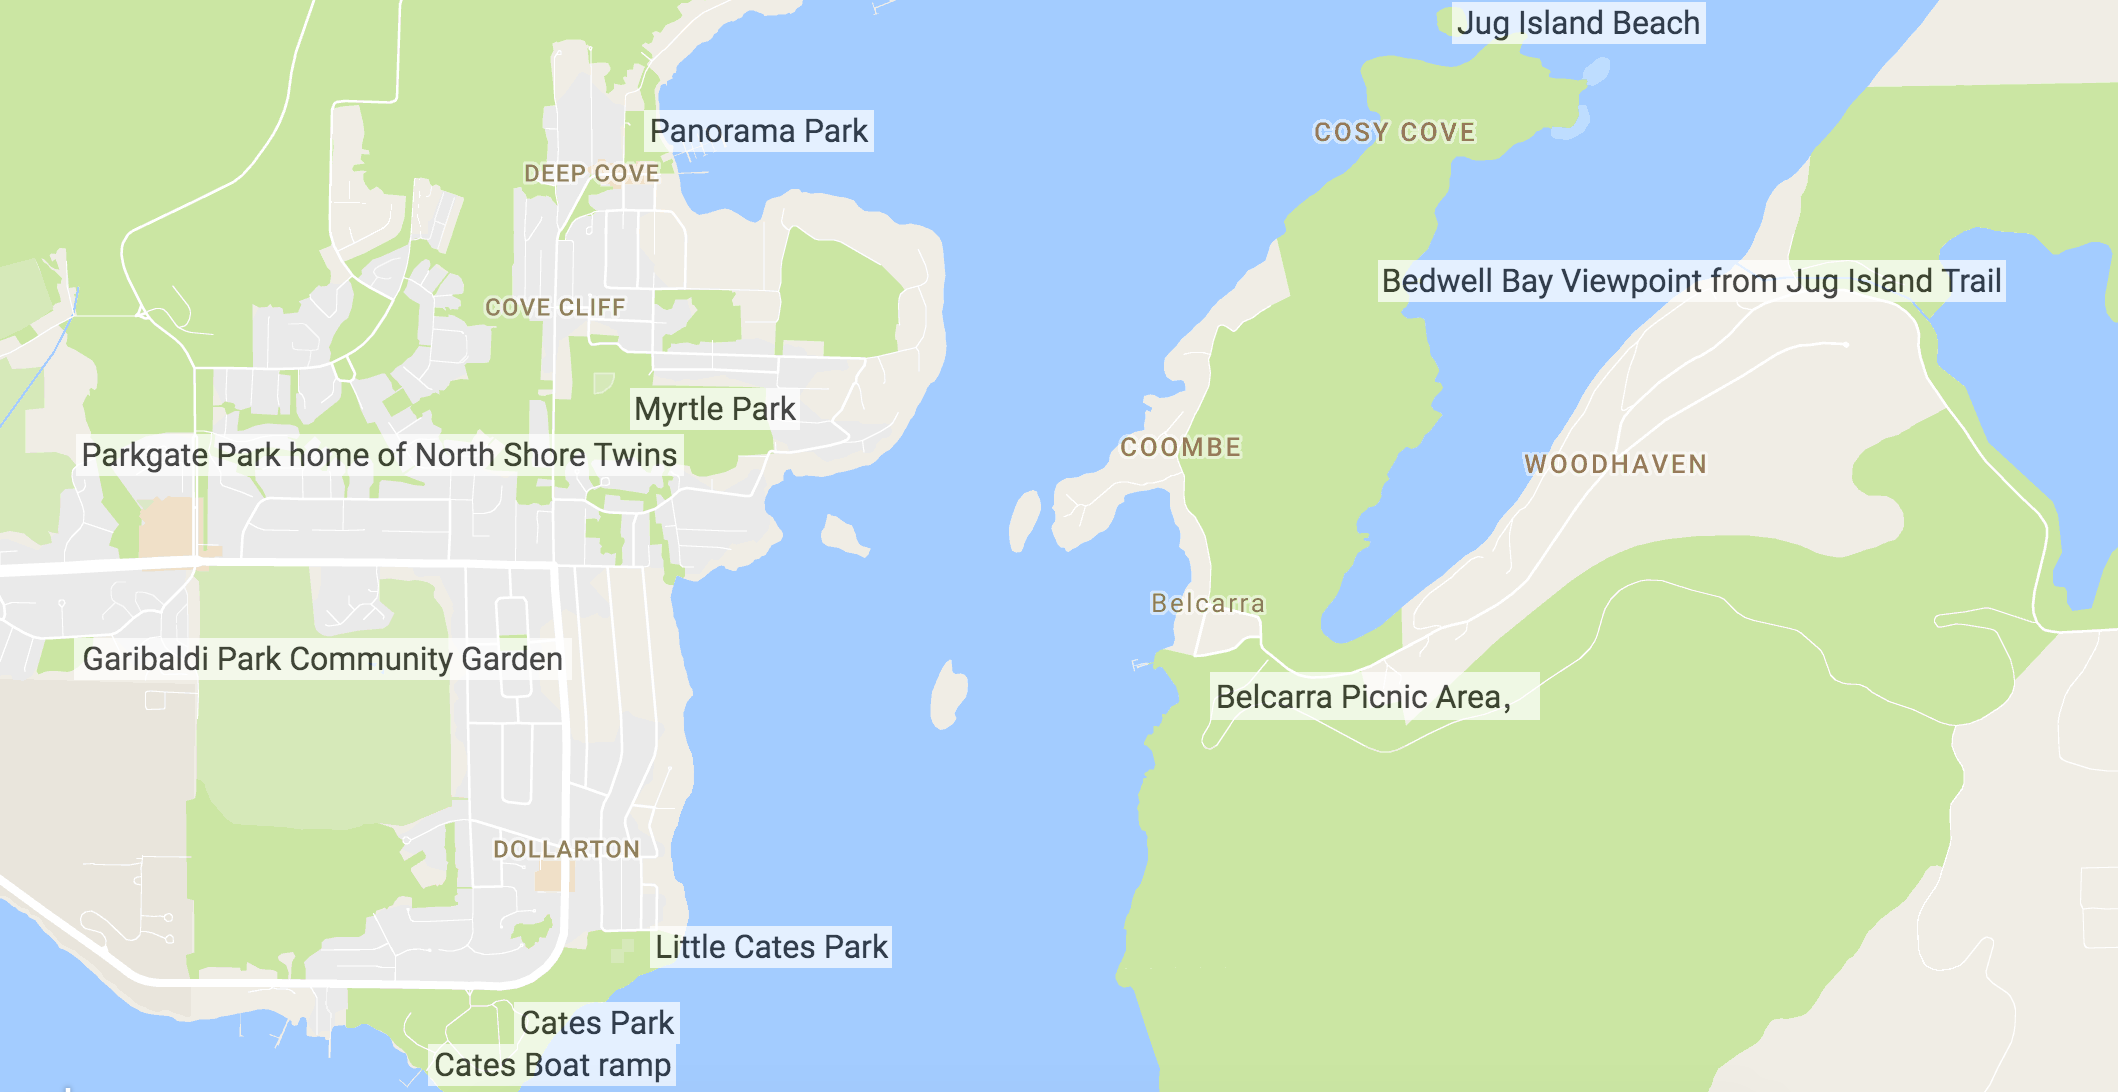 Custom Infobox Labels with Google Maps Places API